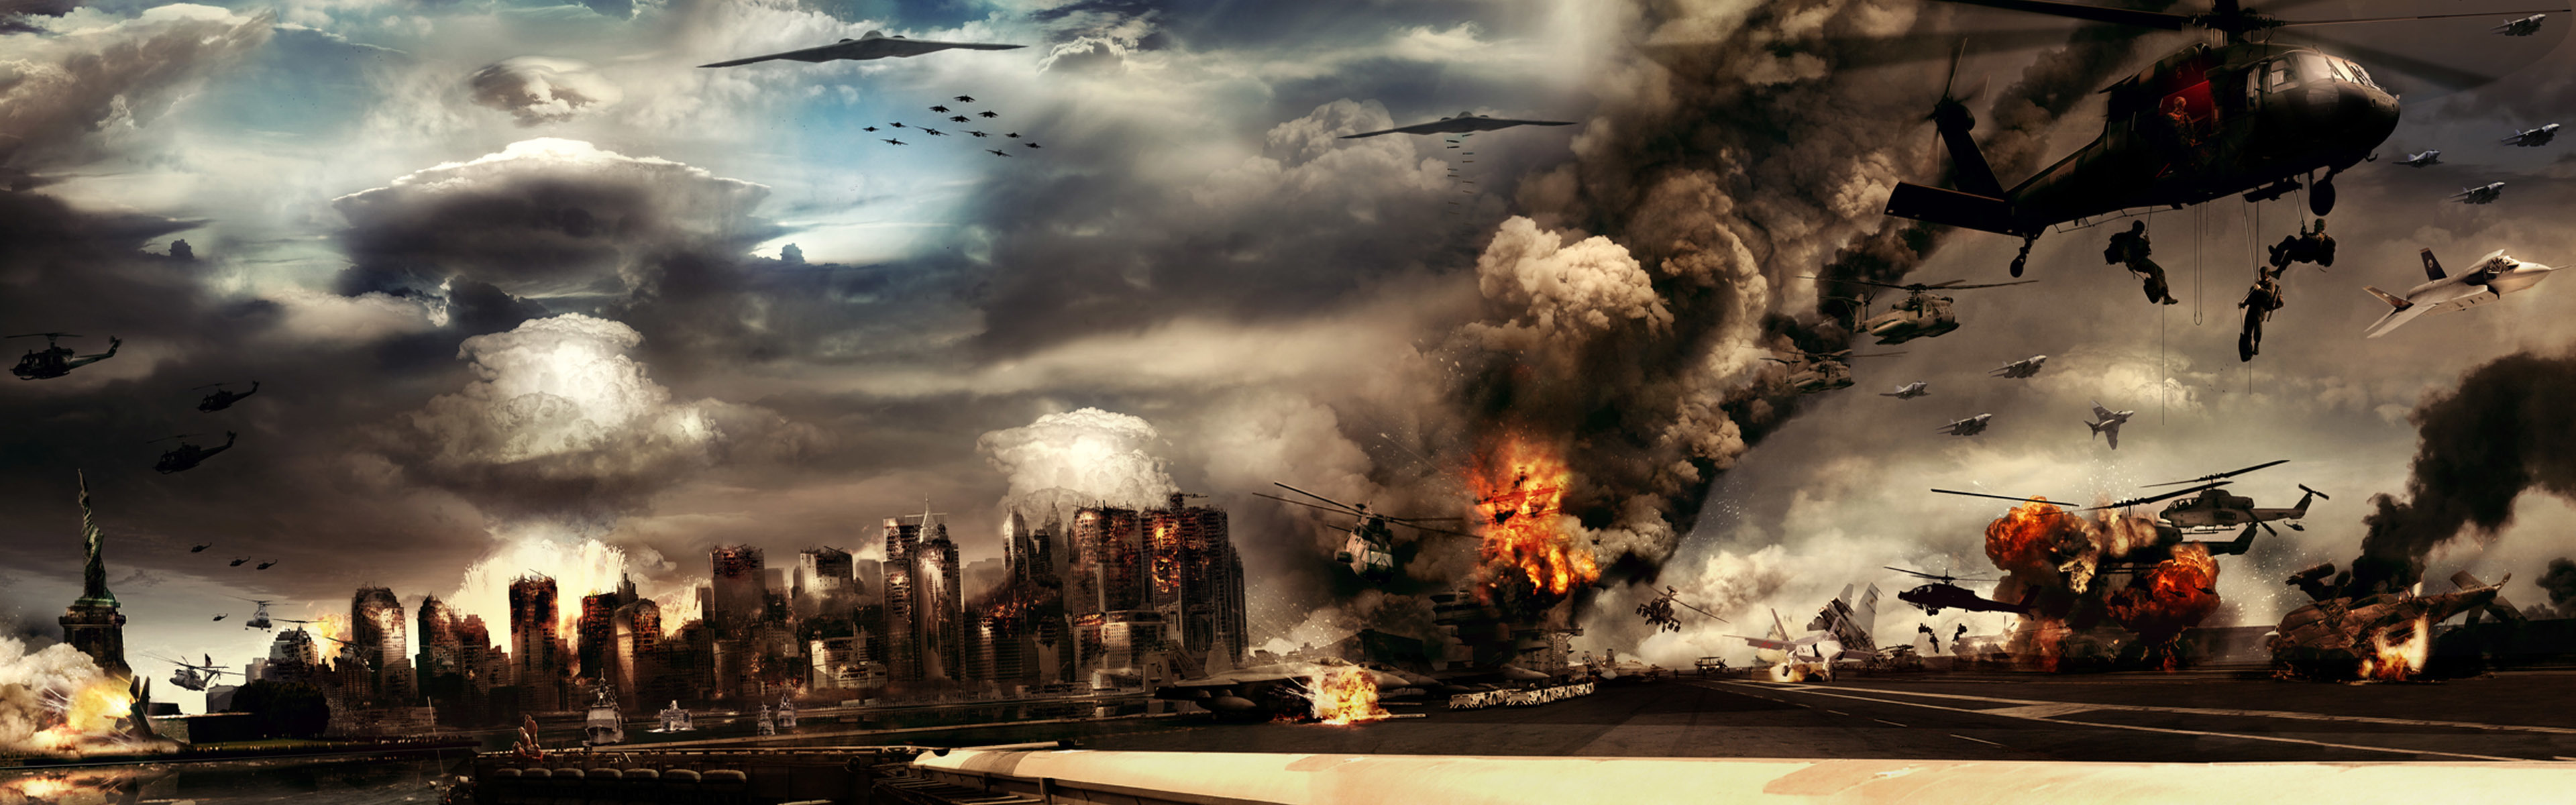 Helicopters explosions destruction statue HD Wallpaper